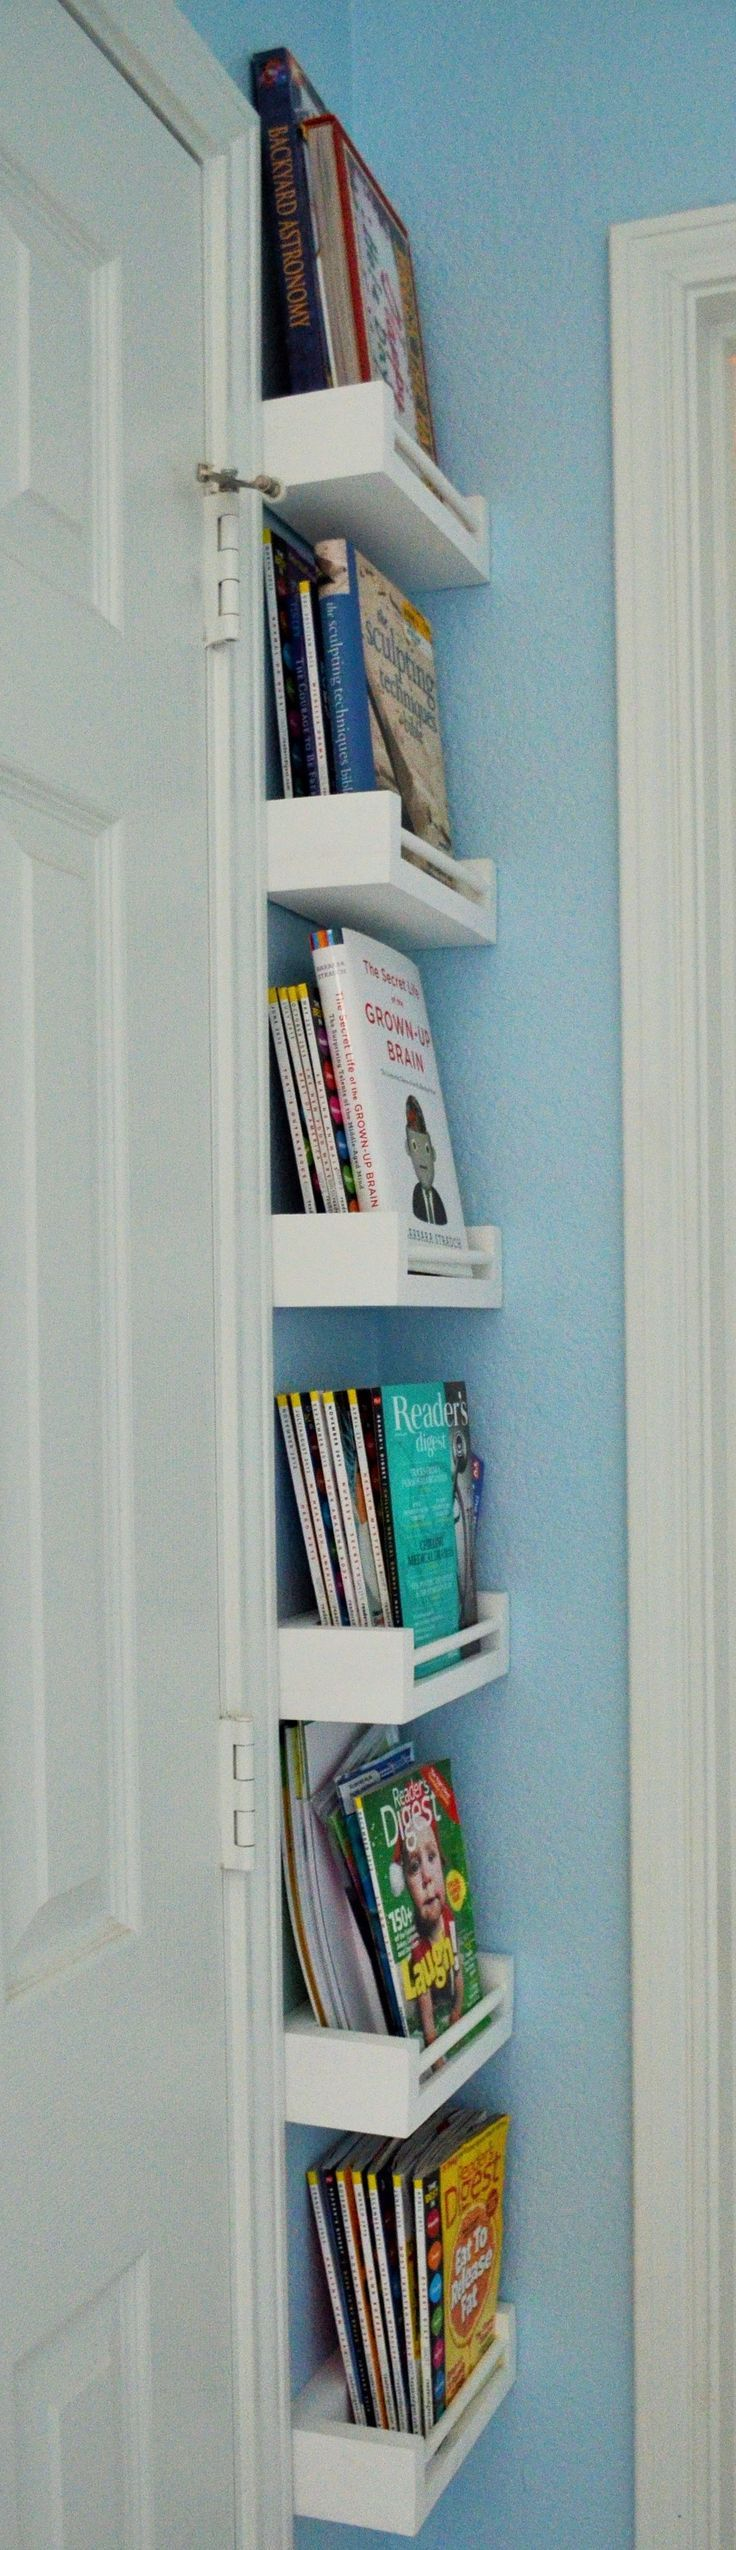 Kids Bedroom Door small corner bookshelves. work great for behind door in kids room